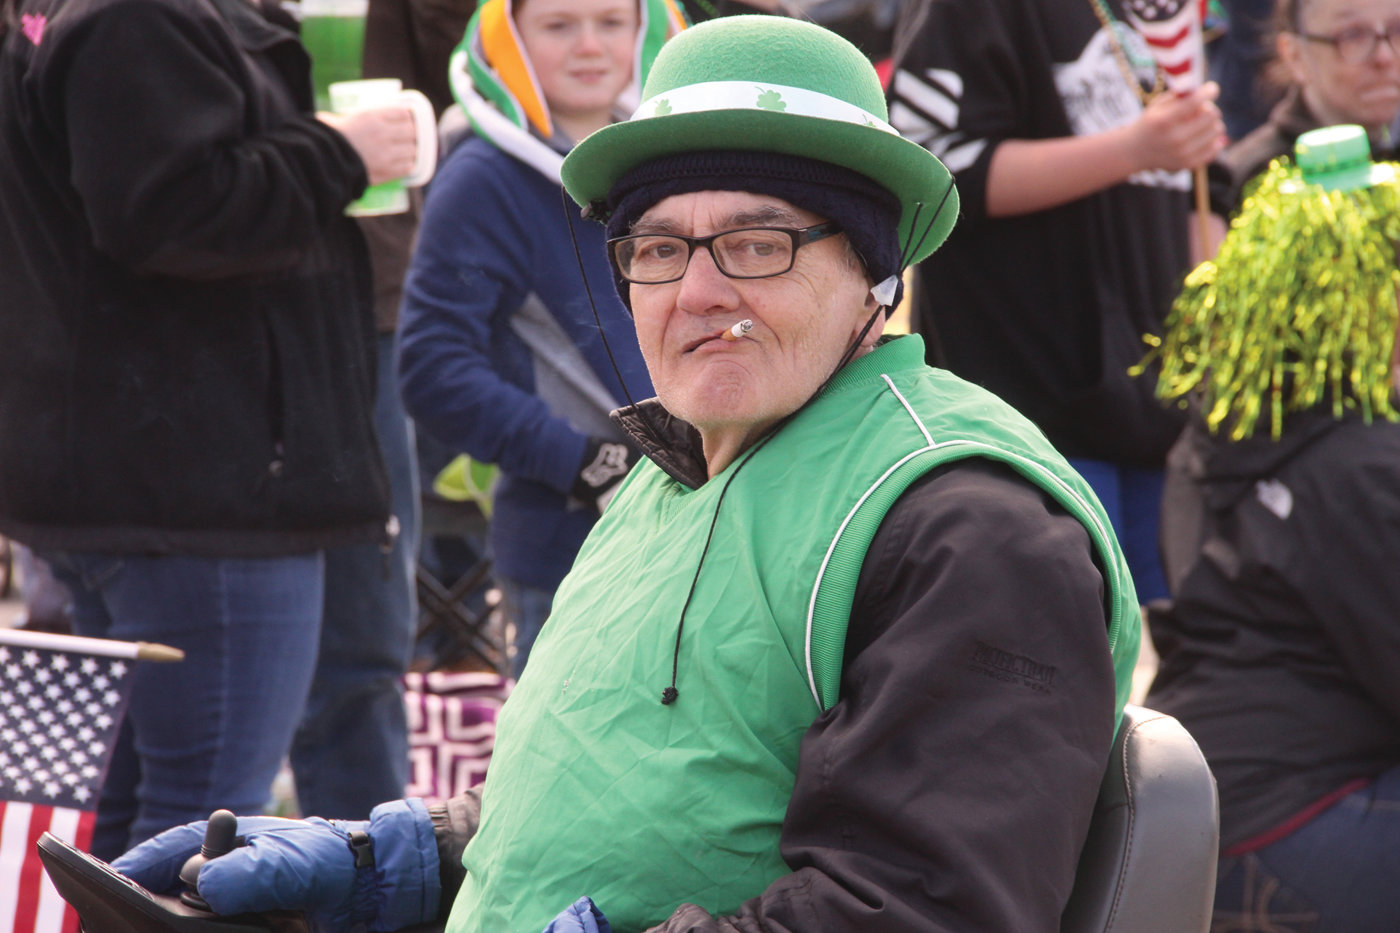 HIS OWN 